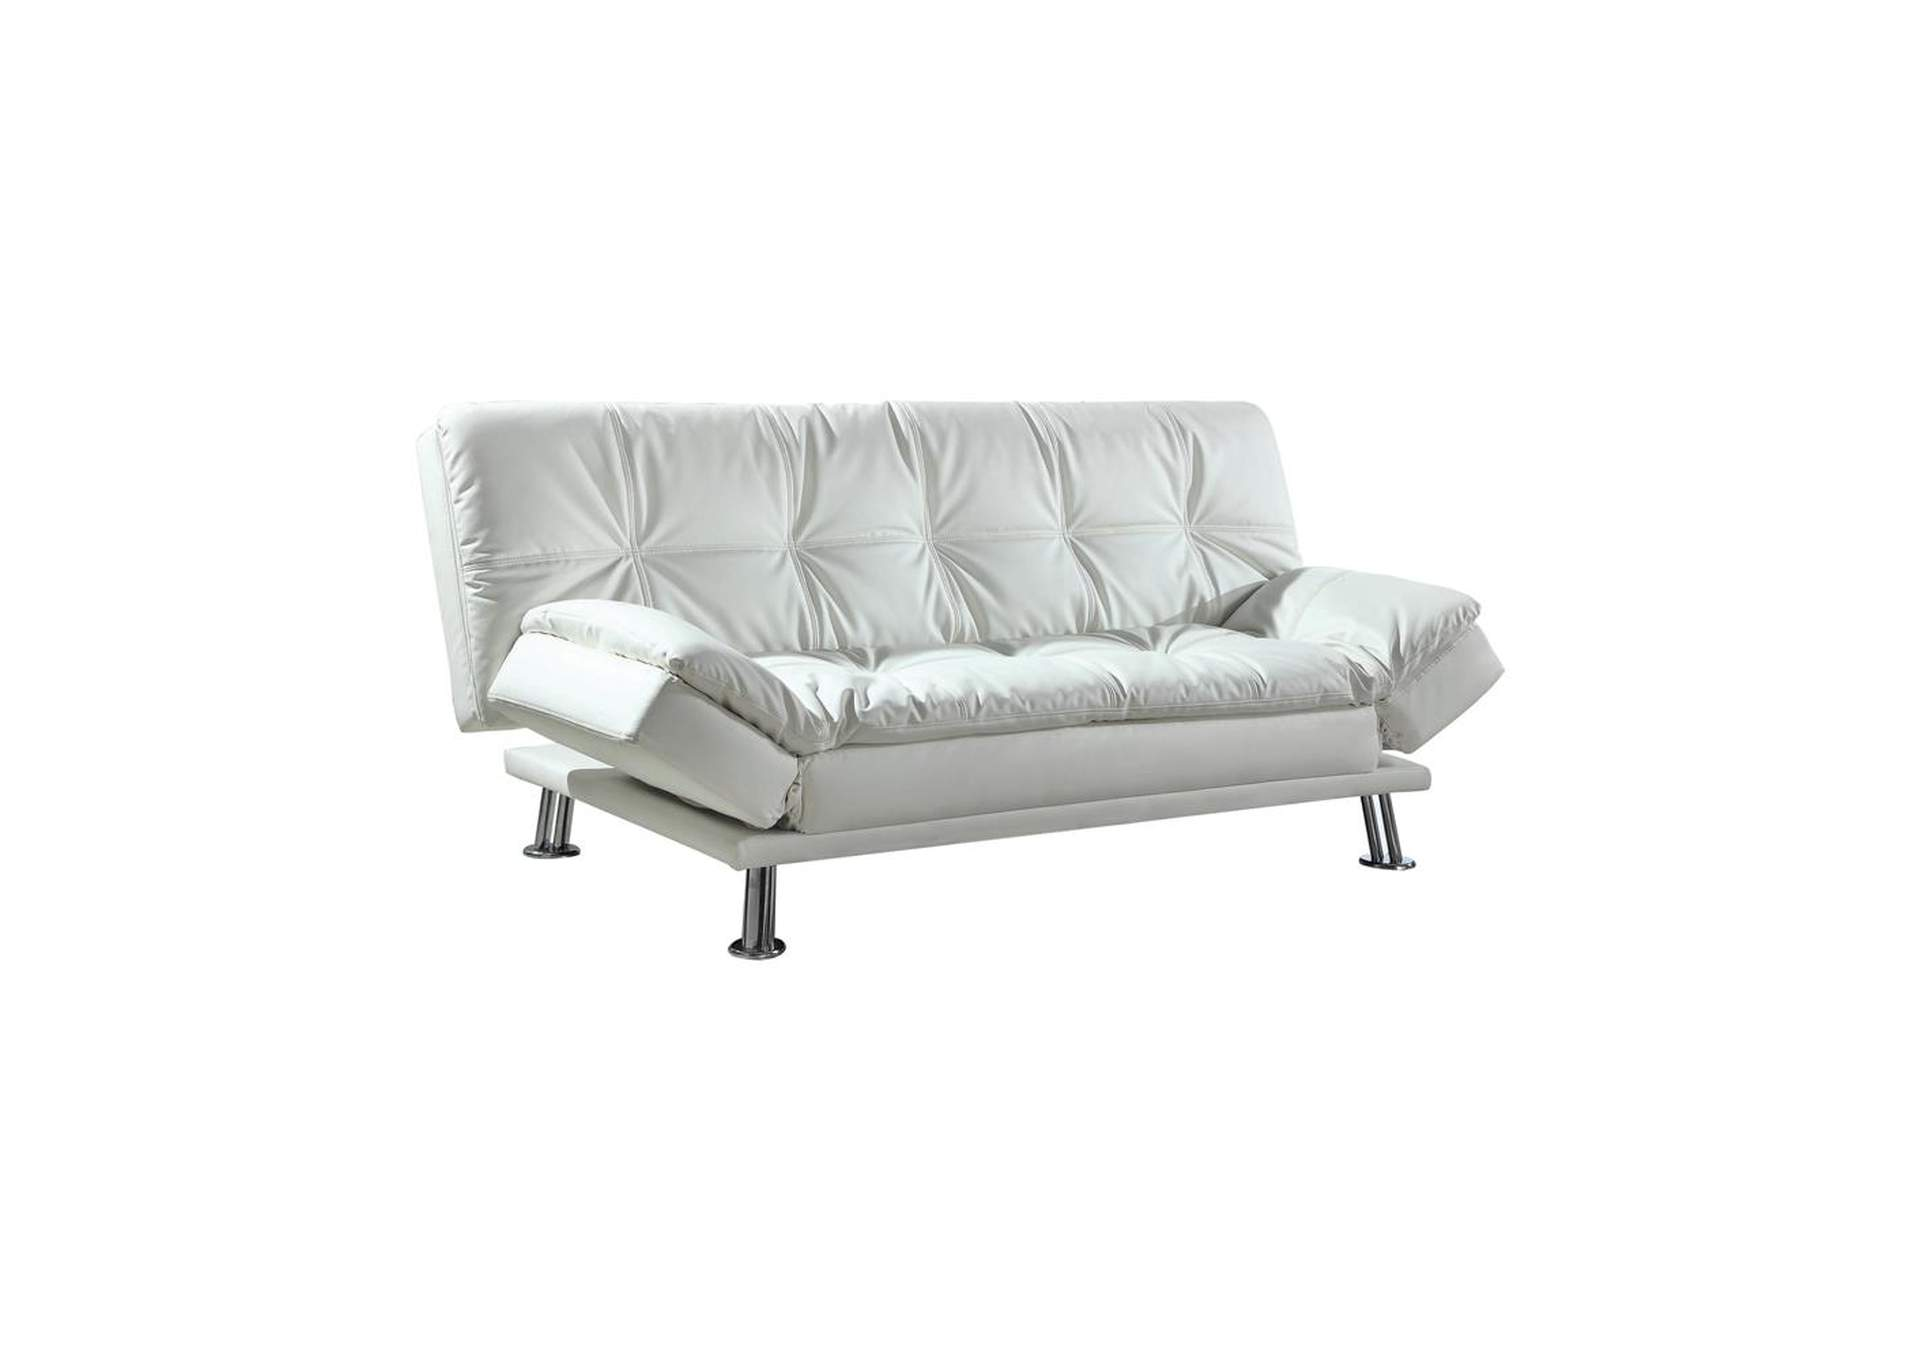 Pumice Dilleston Contemporary White Sofa Bed,Coaster Furniture